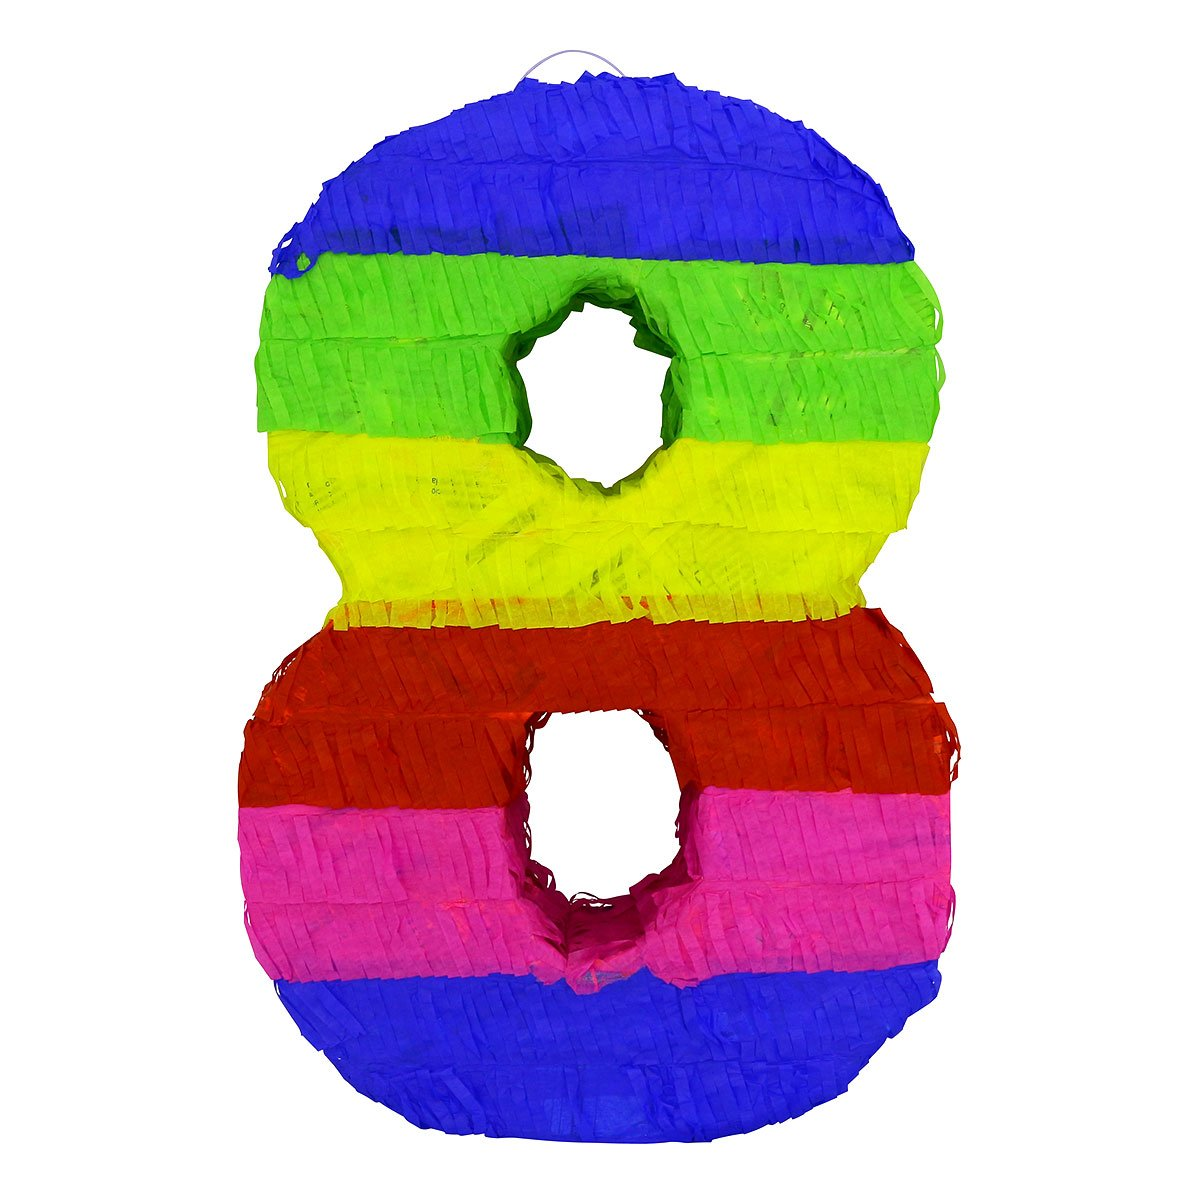 Lytio - Multicolor Paper 3D Numbers Pinata (Piñata) – Great for Any Party, Décor, Photo Prop. (Eight)